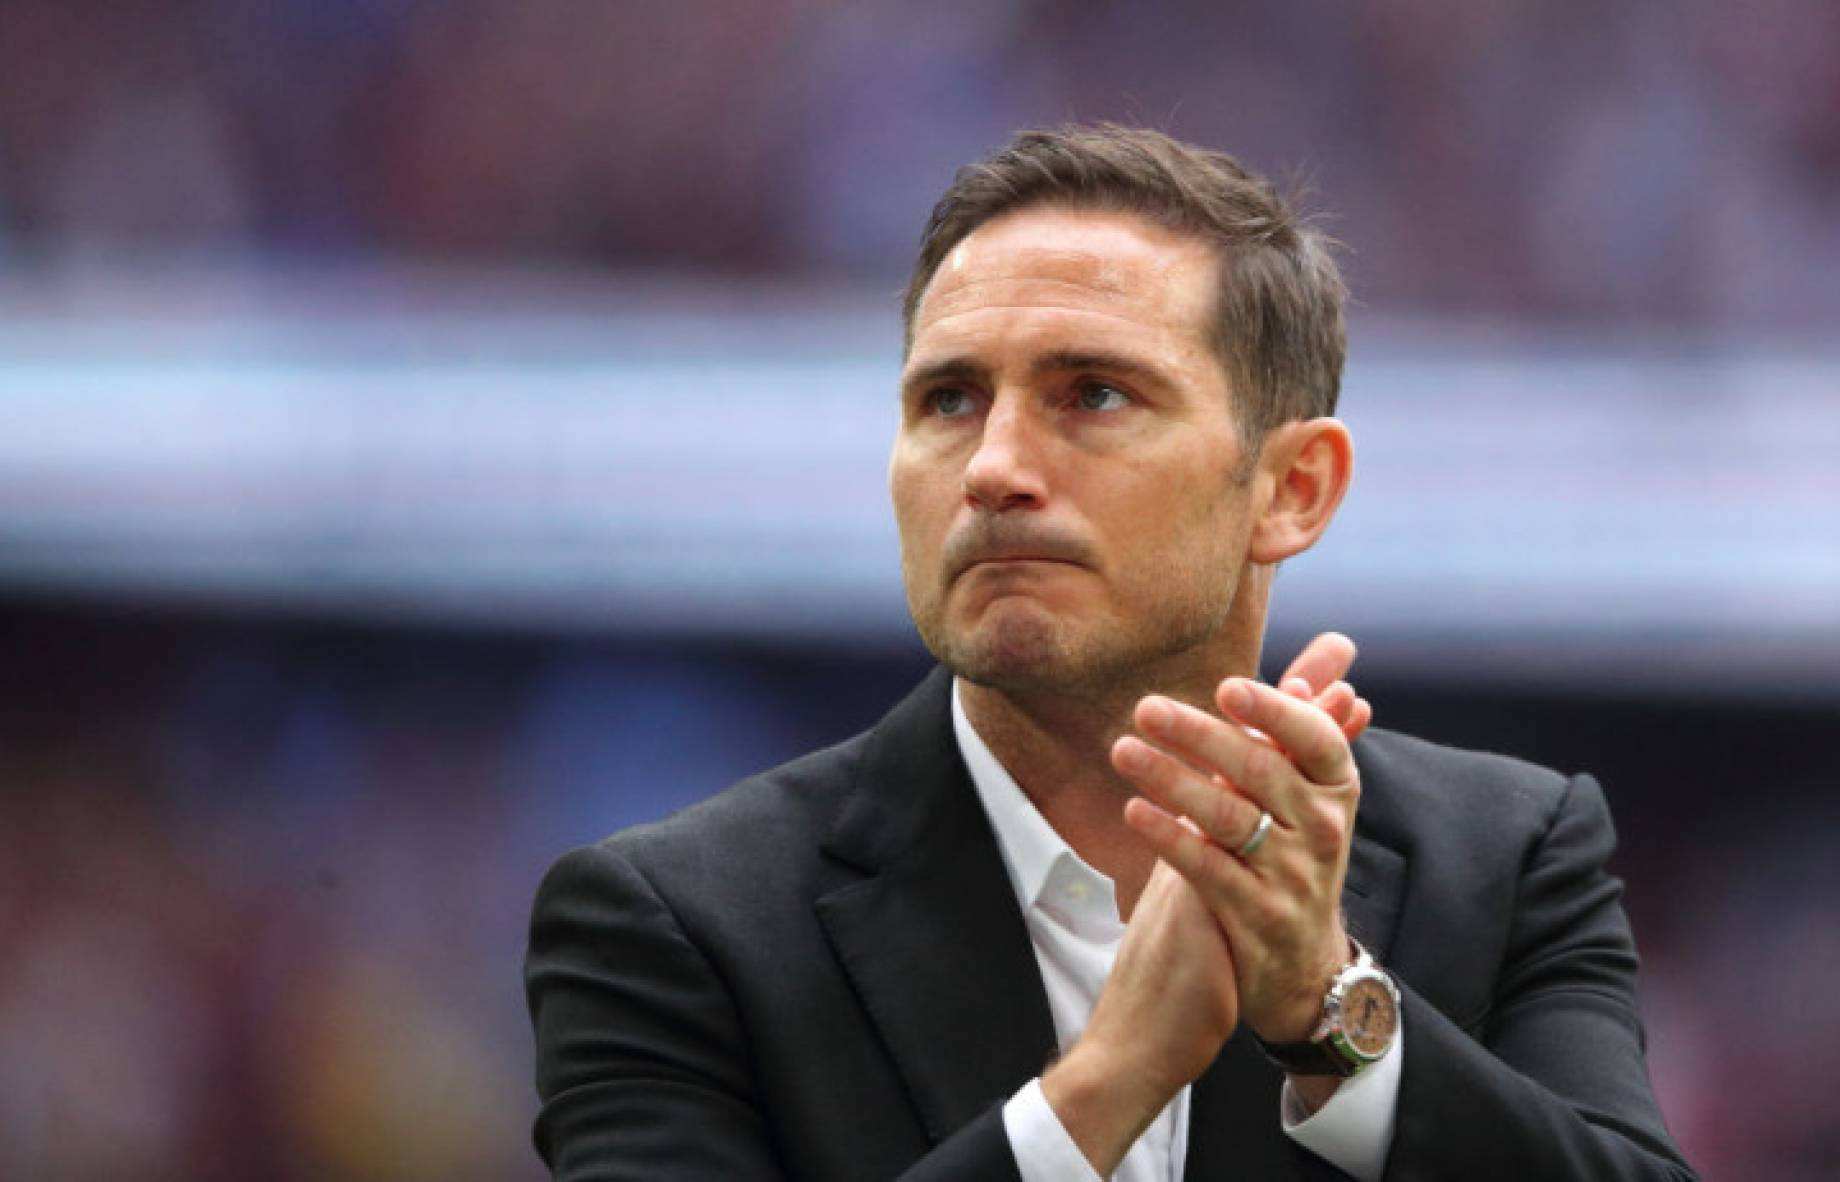 Lampard getty ritagliata.jpg